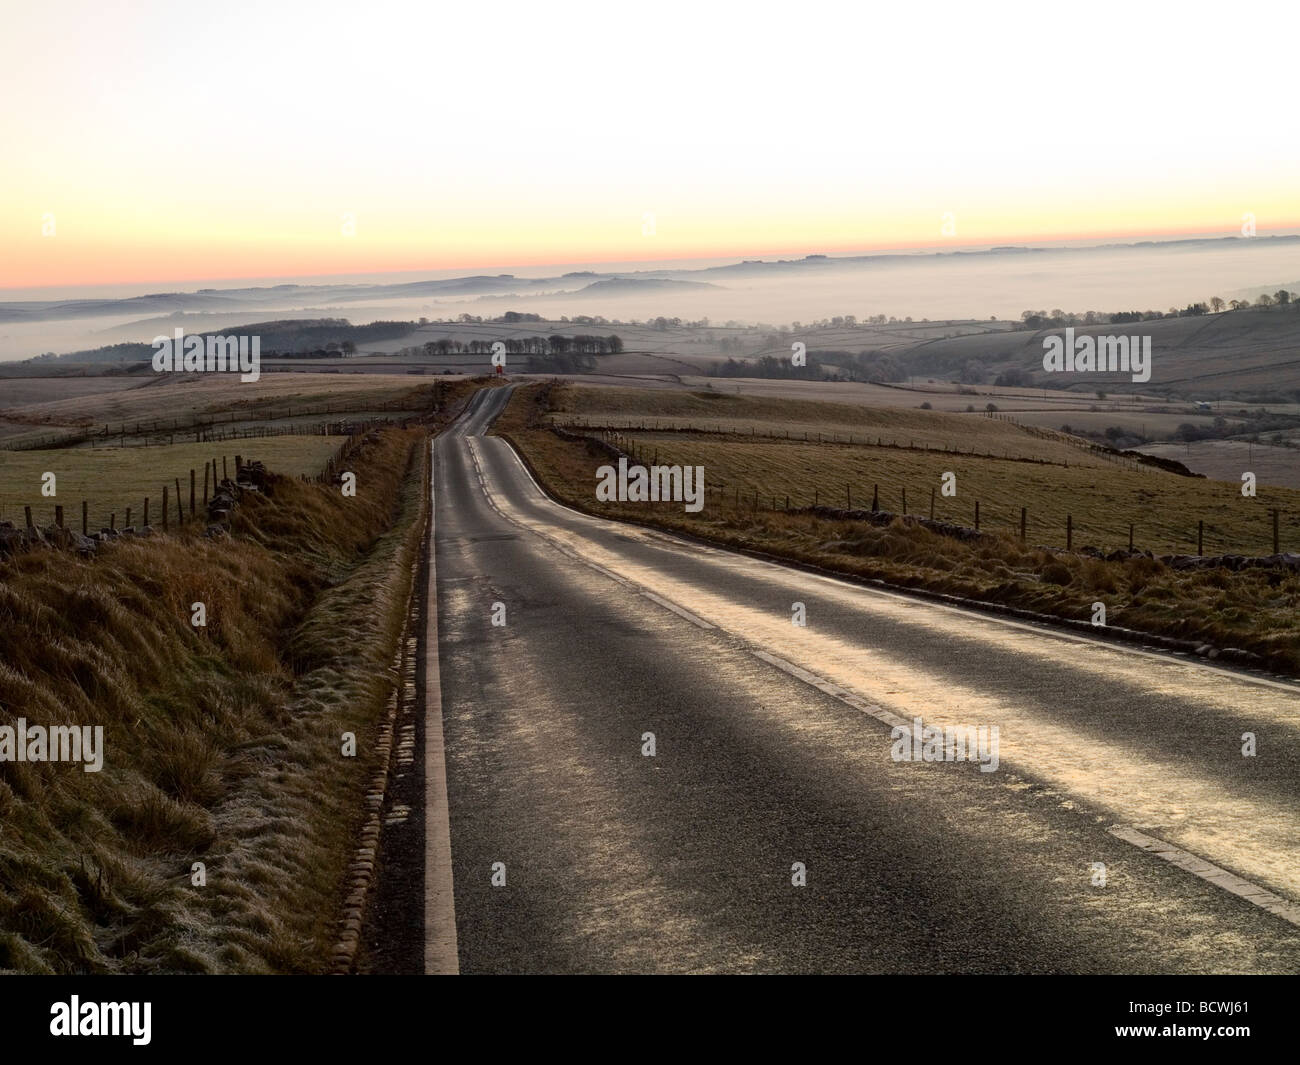 Sunrise over the long empty road to Longnor near Buxton in the Peak District, Derbyshire England UK - Stock Image